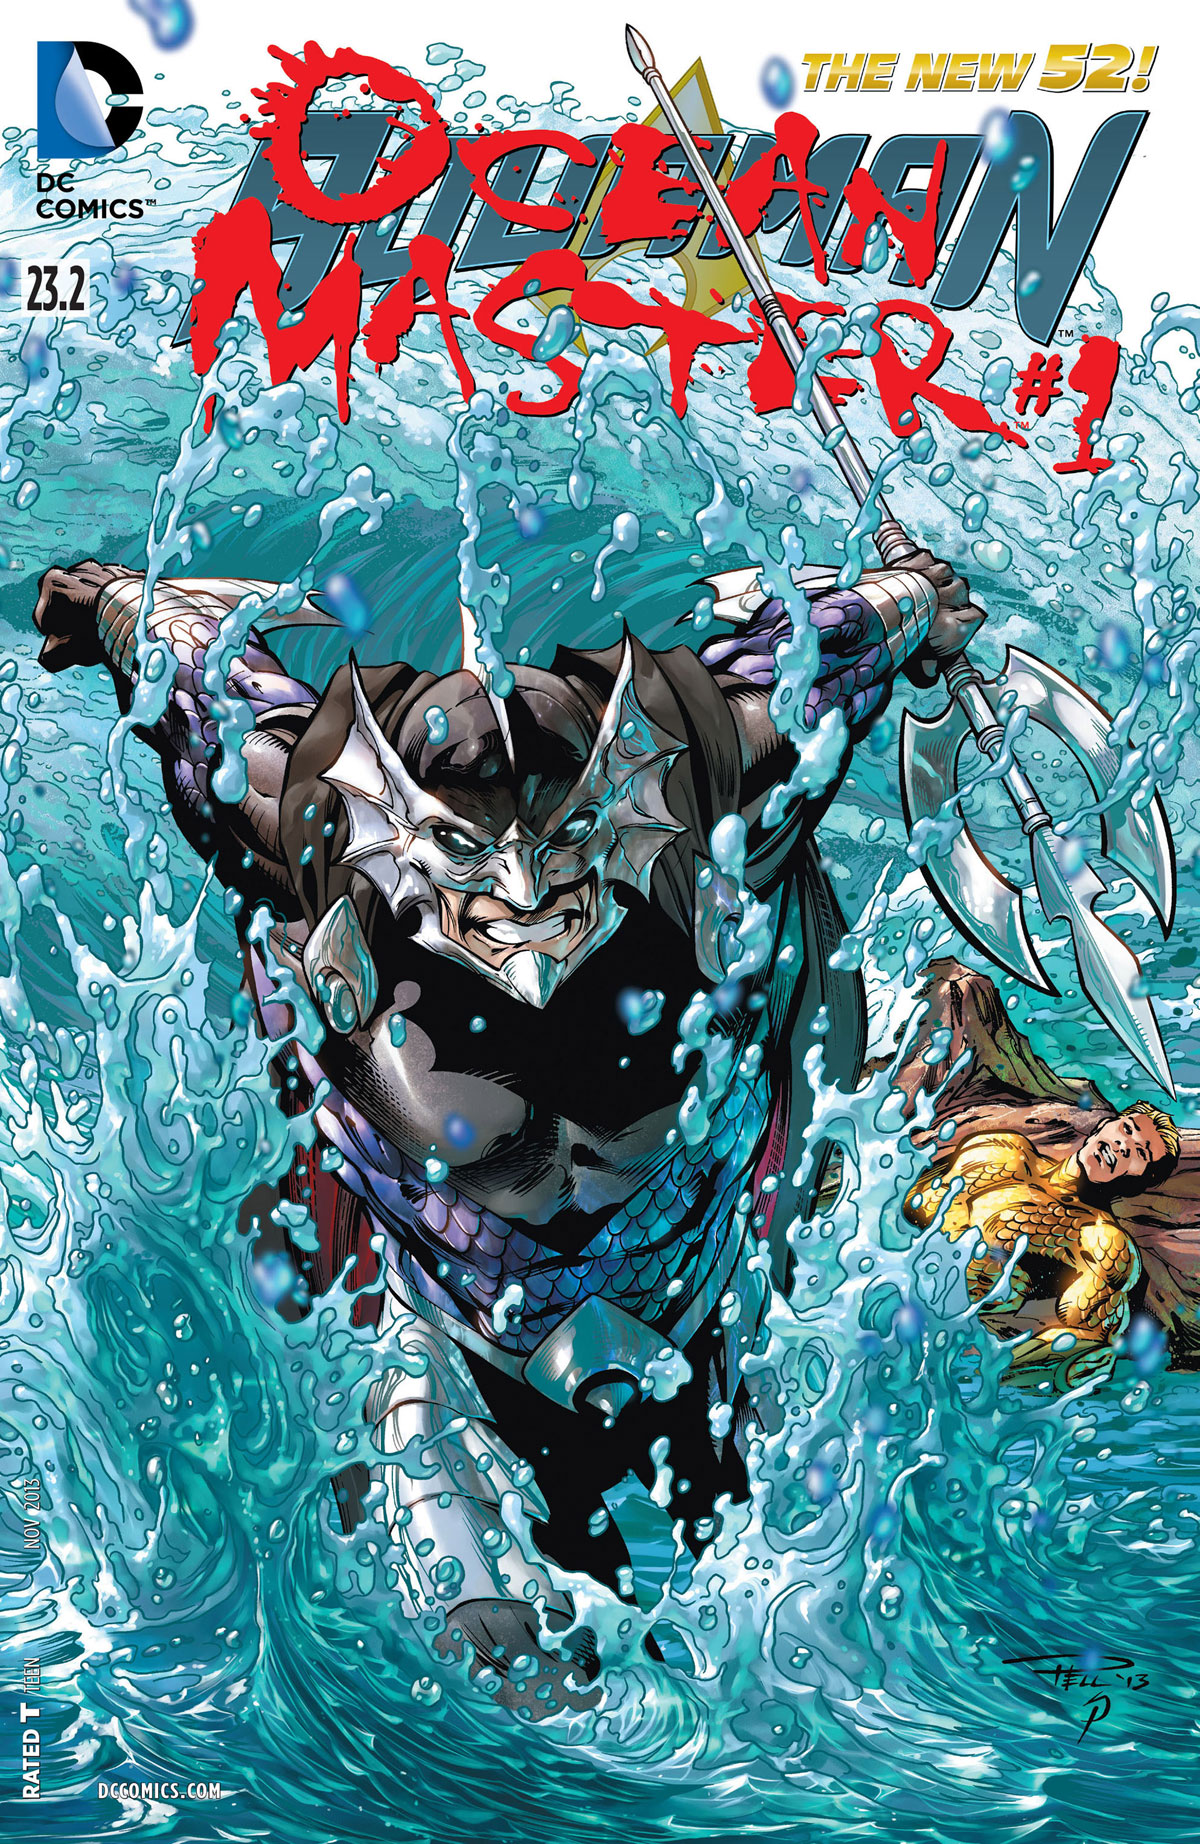 Aquaman #23.2 Ocean Master #1 cover by Paul Pelletier, Sean Parsons, and Rod Reis